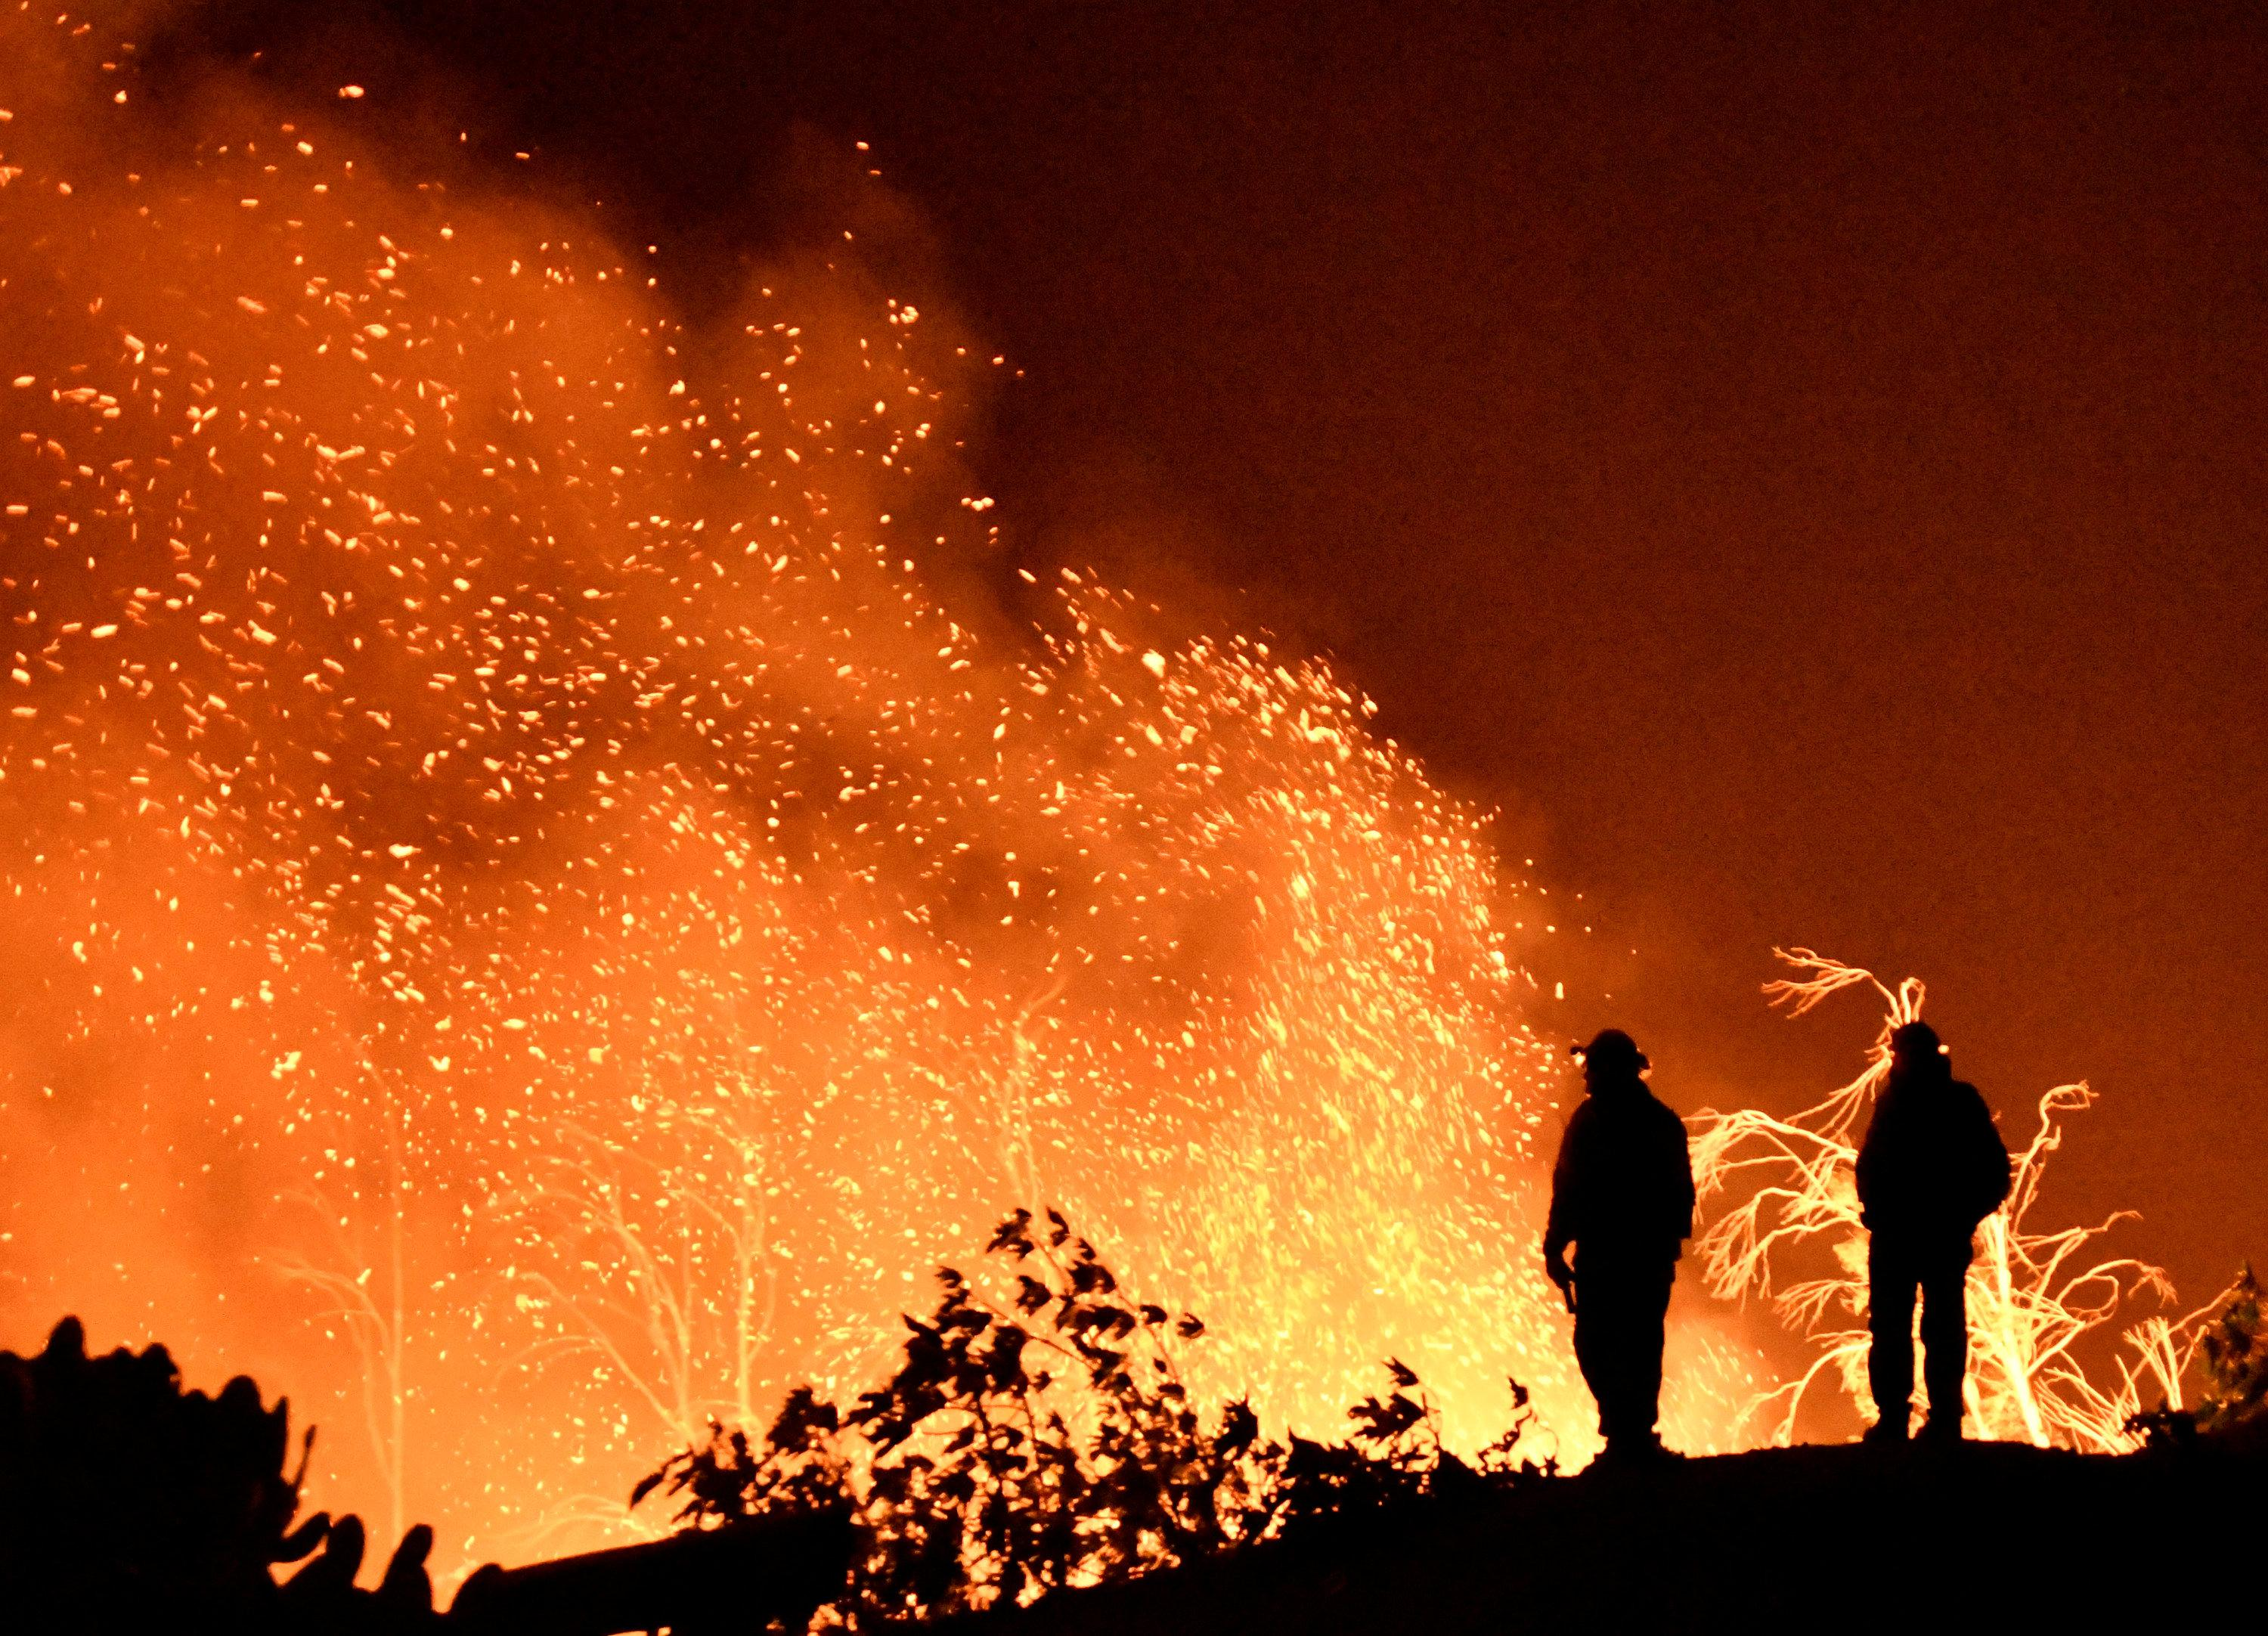 Firefighters keep watch on the Thomas wildfire in the hills and canyons outside Montecito, California, U.S., December 16, 2017. Gene Blevins